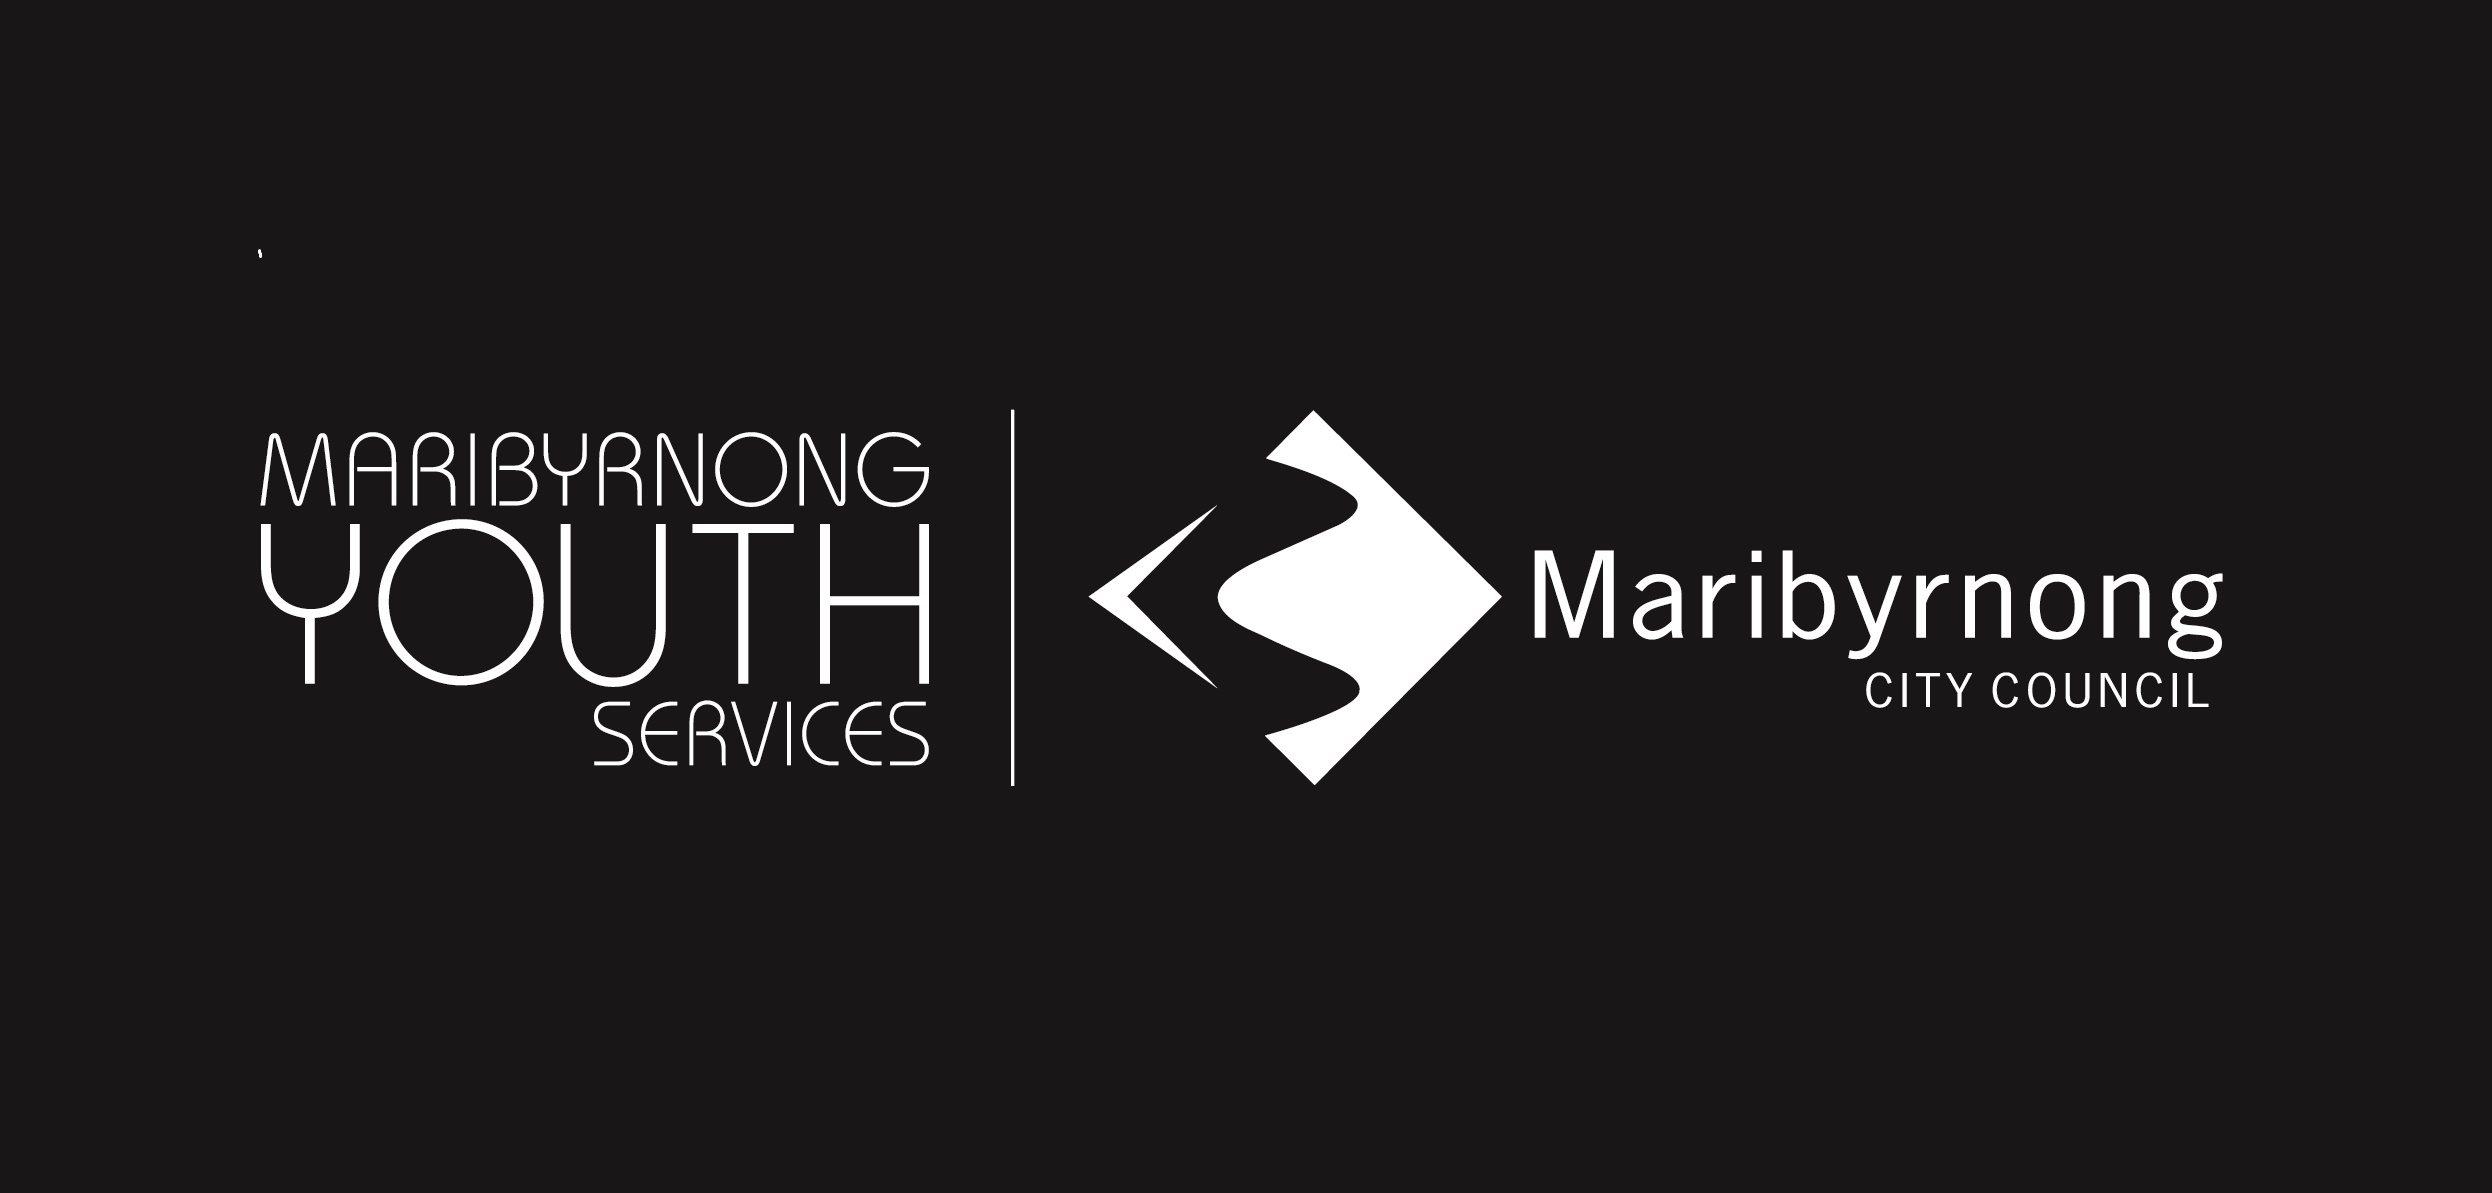 16 94278  Maribyrnong City Council - Maribyrnong Youth Services - Logo - Reversed - High Resolution - JPEG.jpg